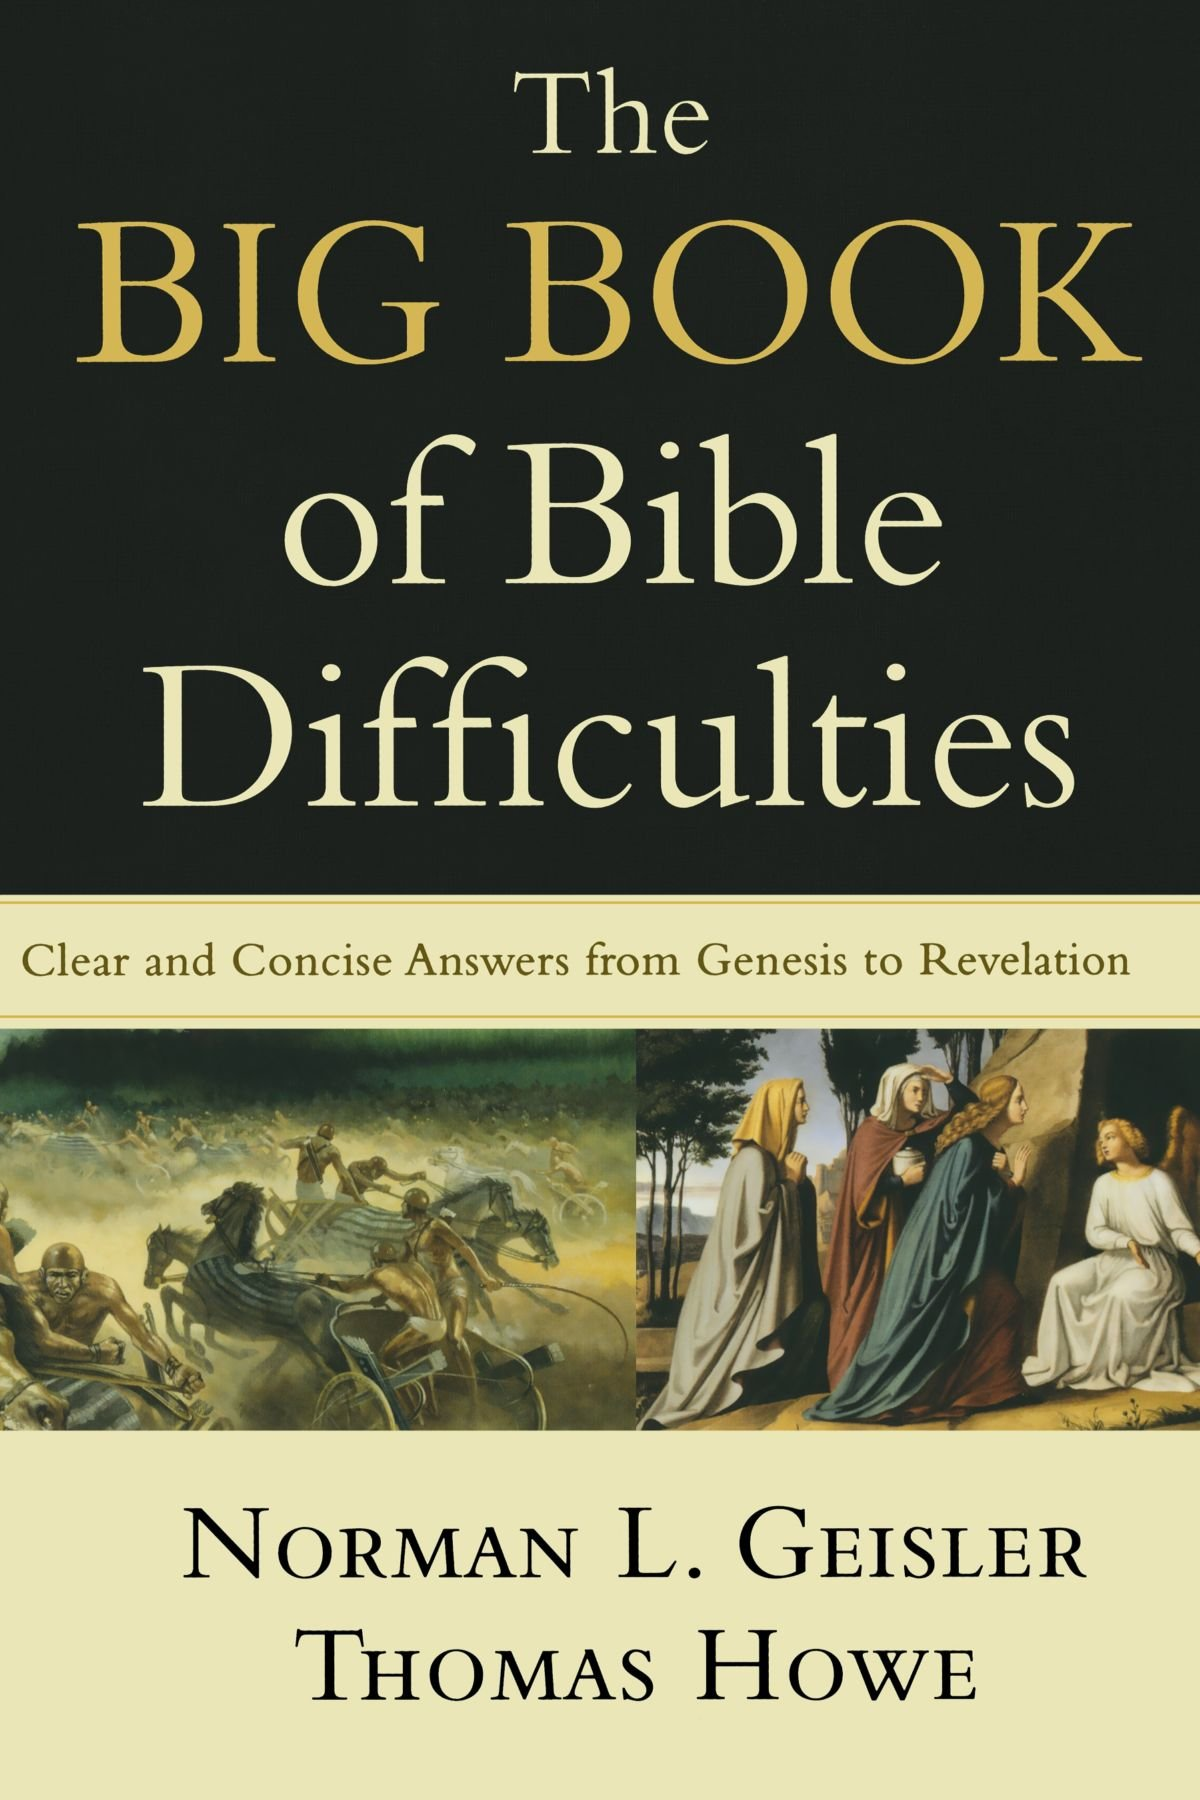 The Big Book Of Bible Difficulties (Geisler & Howe